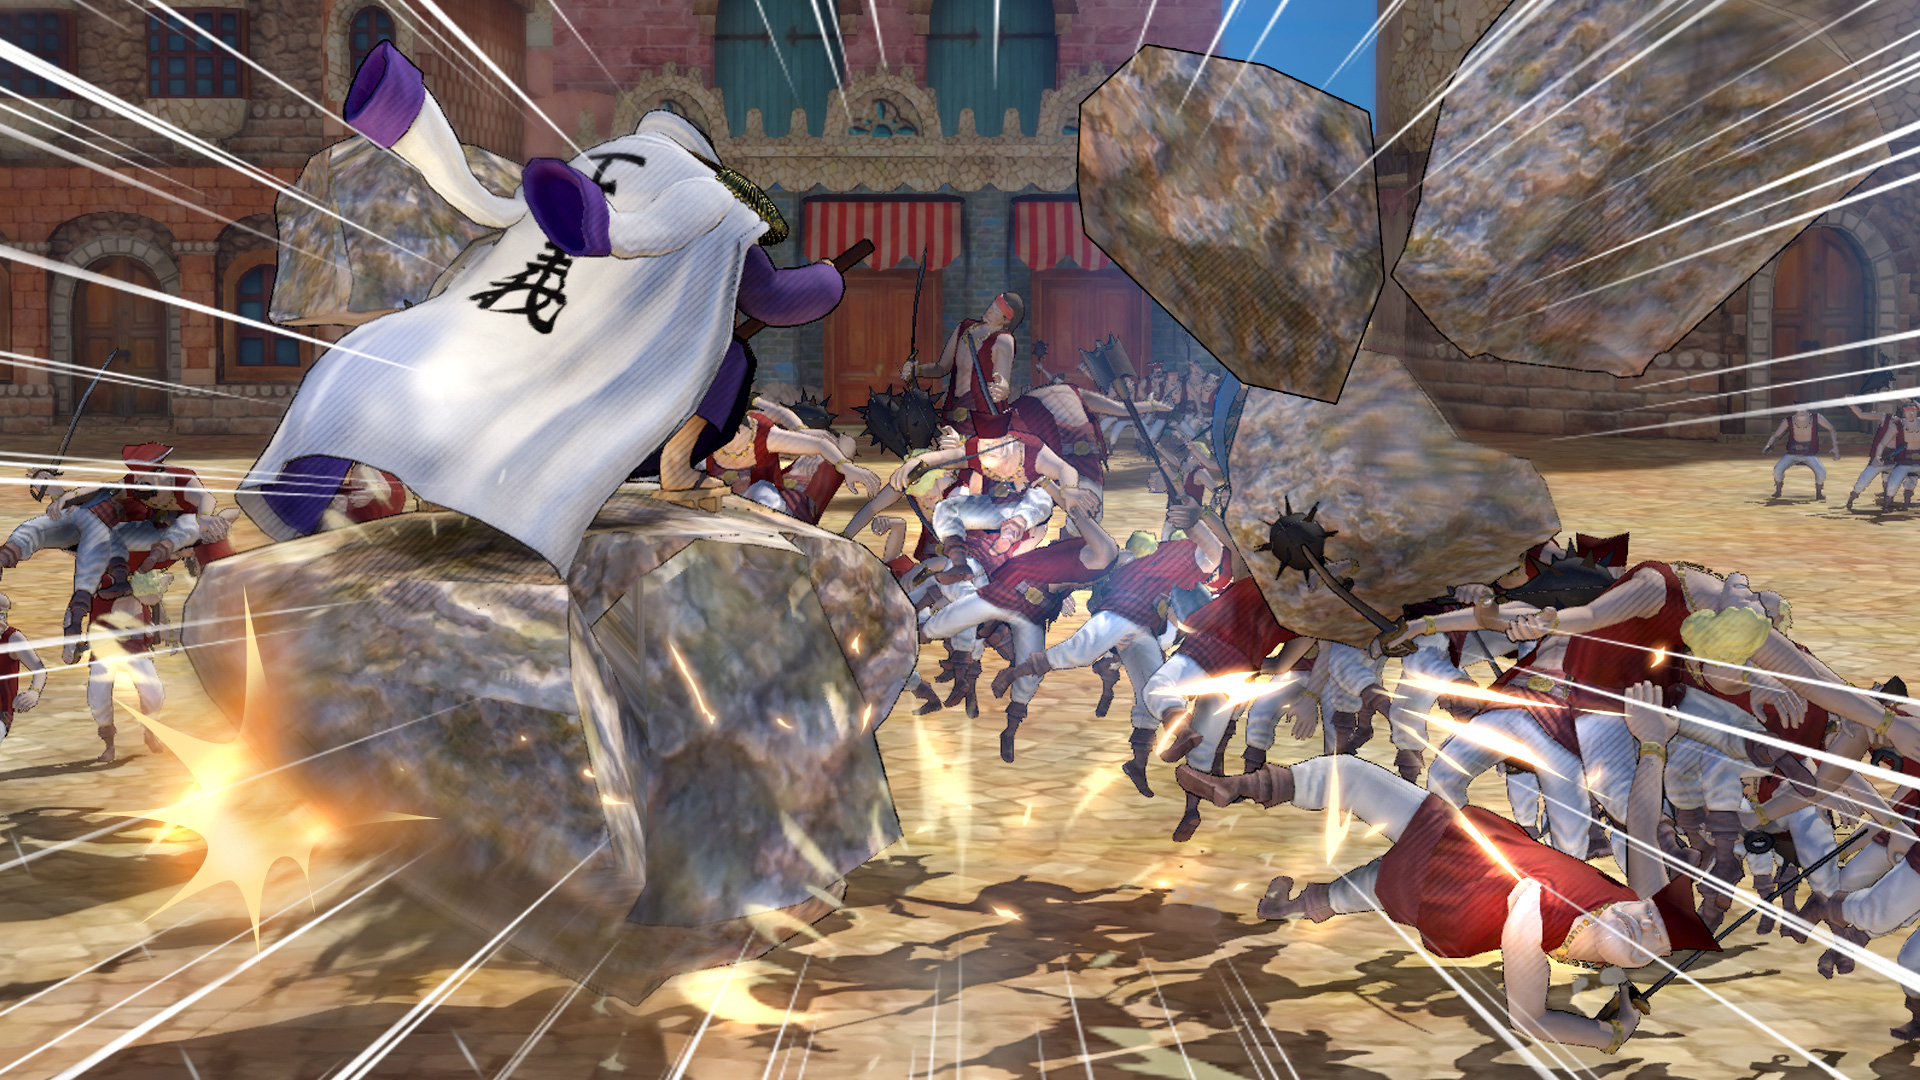 One-Piece-Pirate-Warriors-3-Screenshot-1